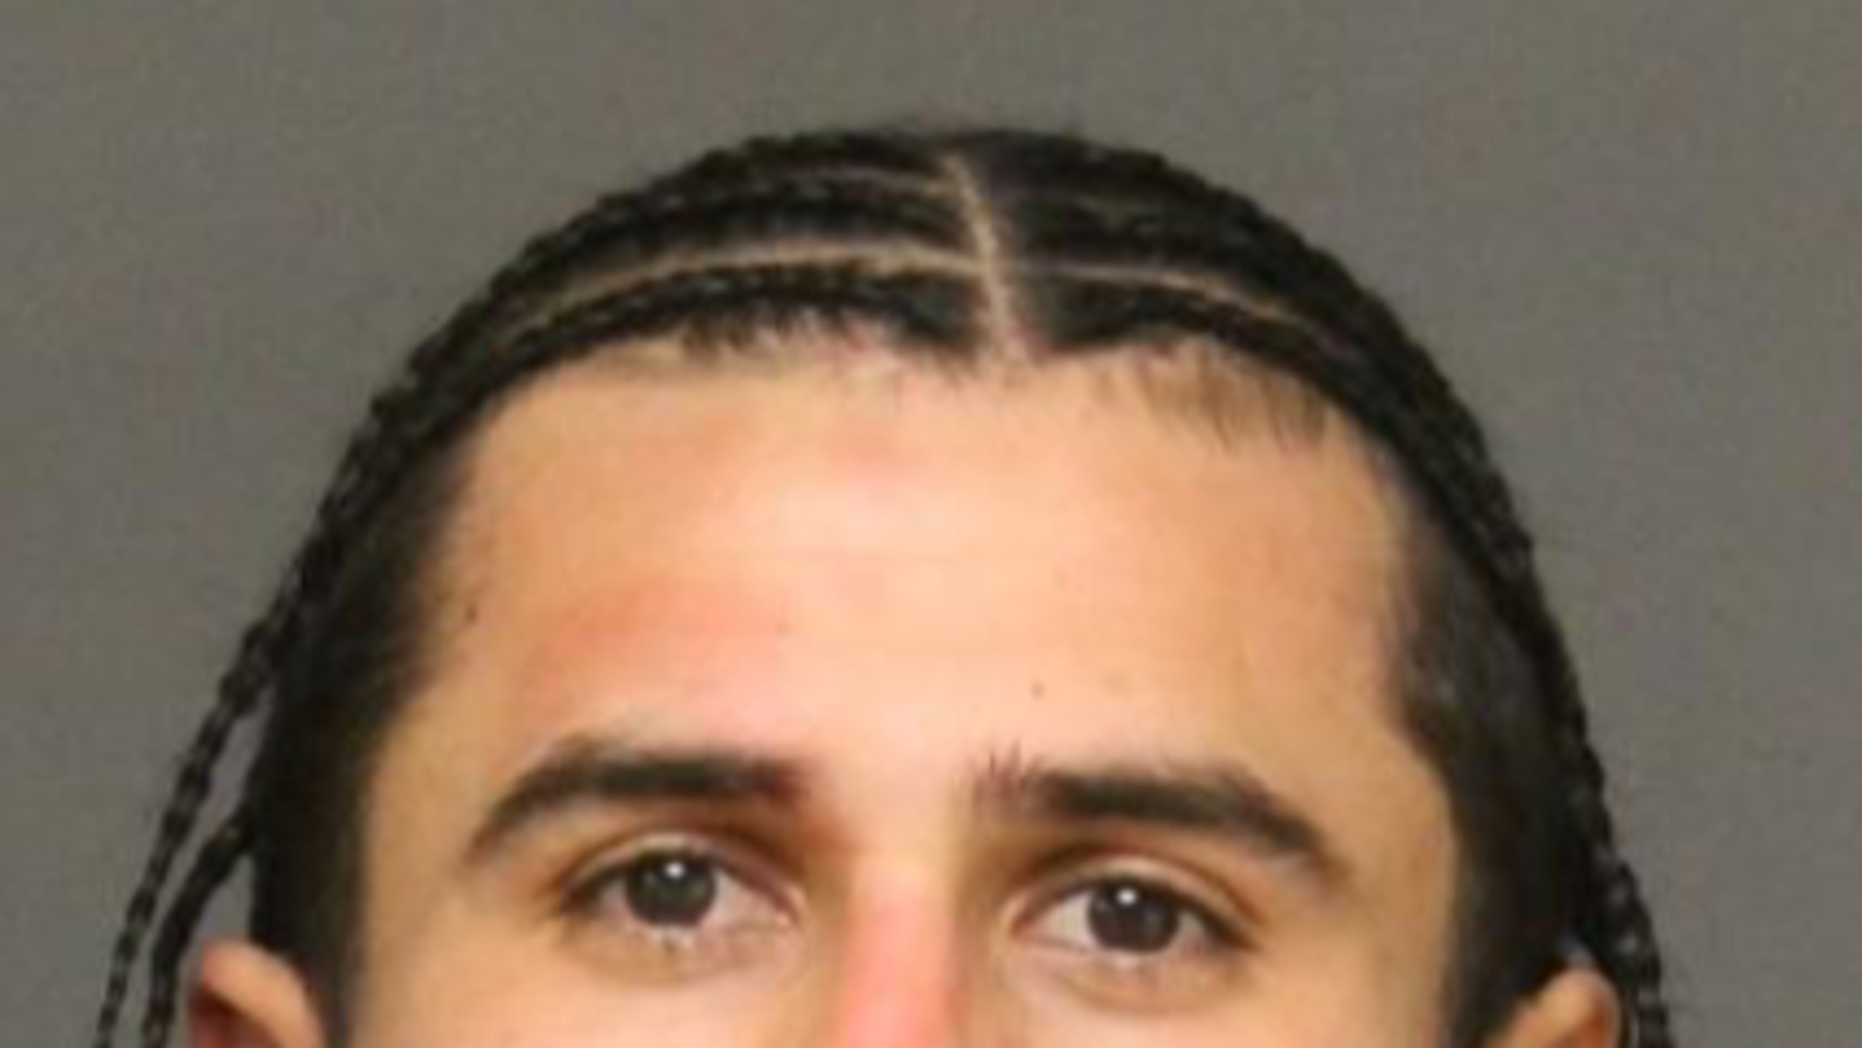 Christopher Solis, 22, was arrested on a charge of felony DUI drugs.